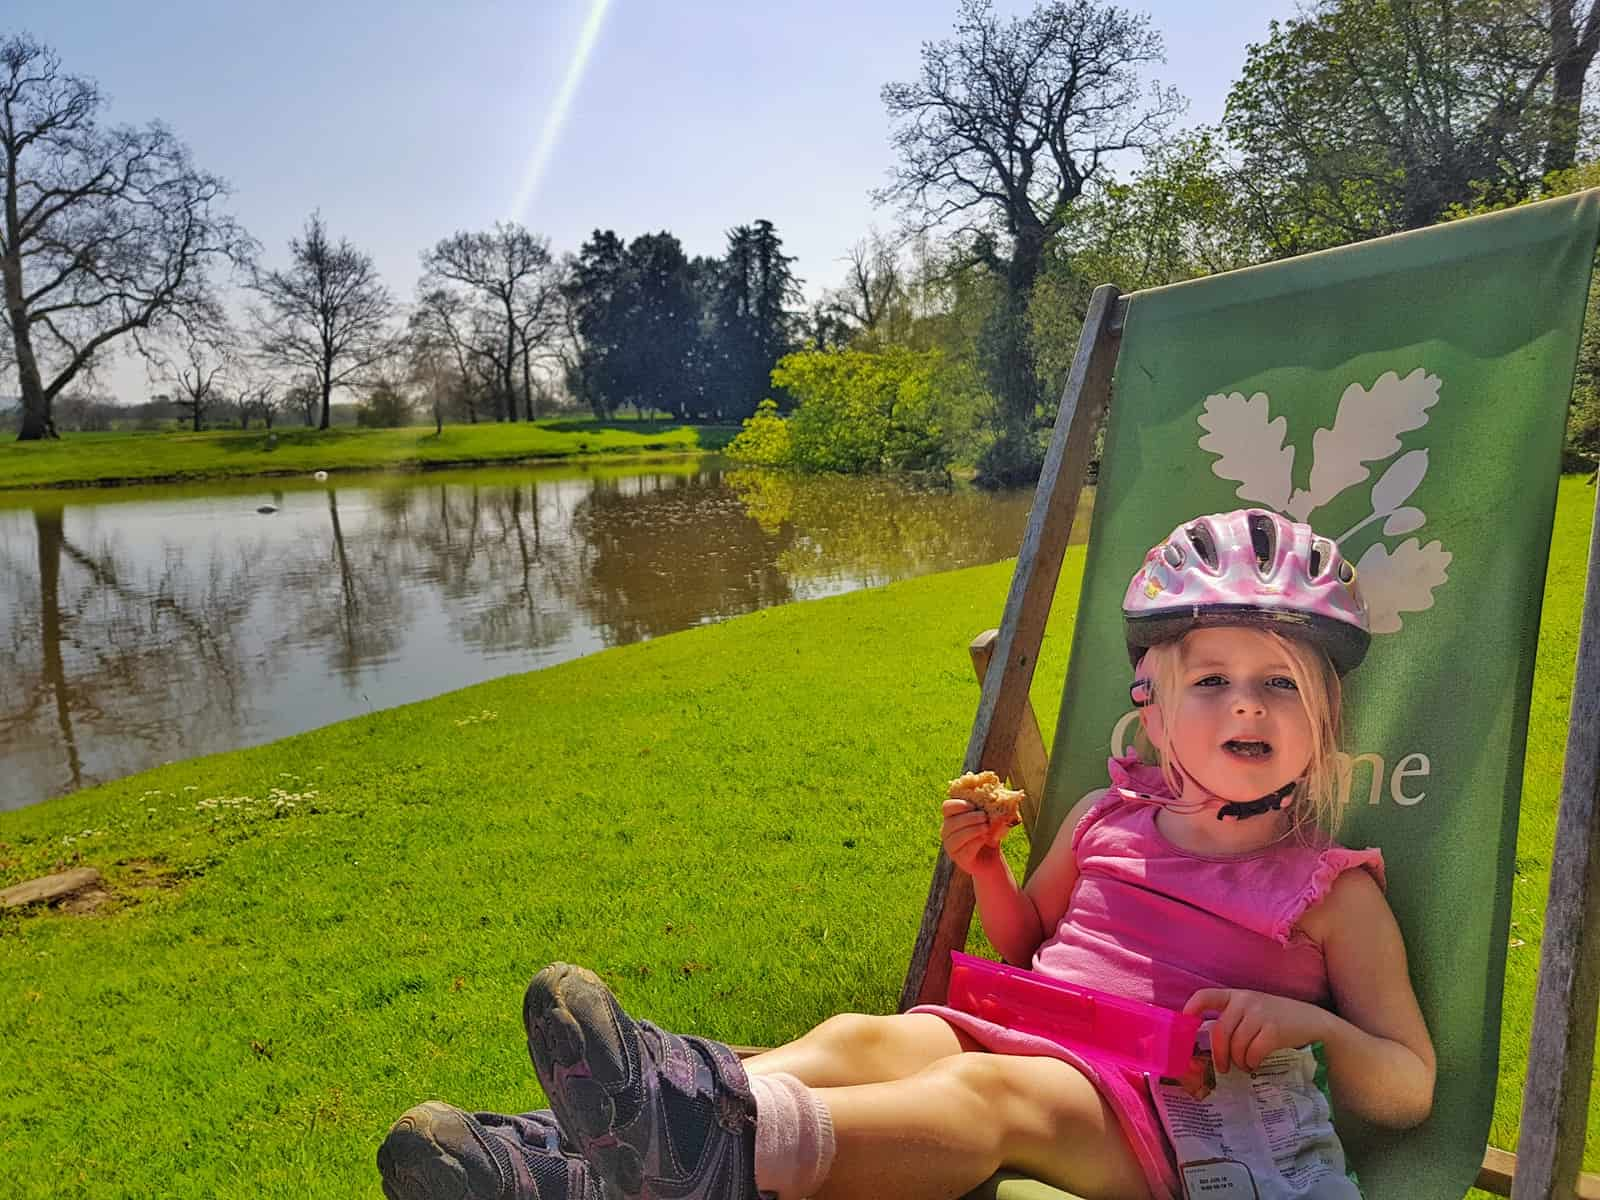 Little girl sitting on a green deck chair by a lake eating a sandwich whilst wearing a pink cycle helmet.